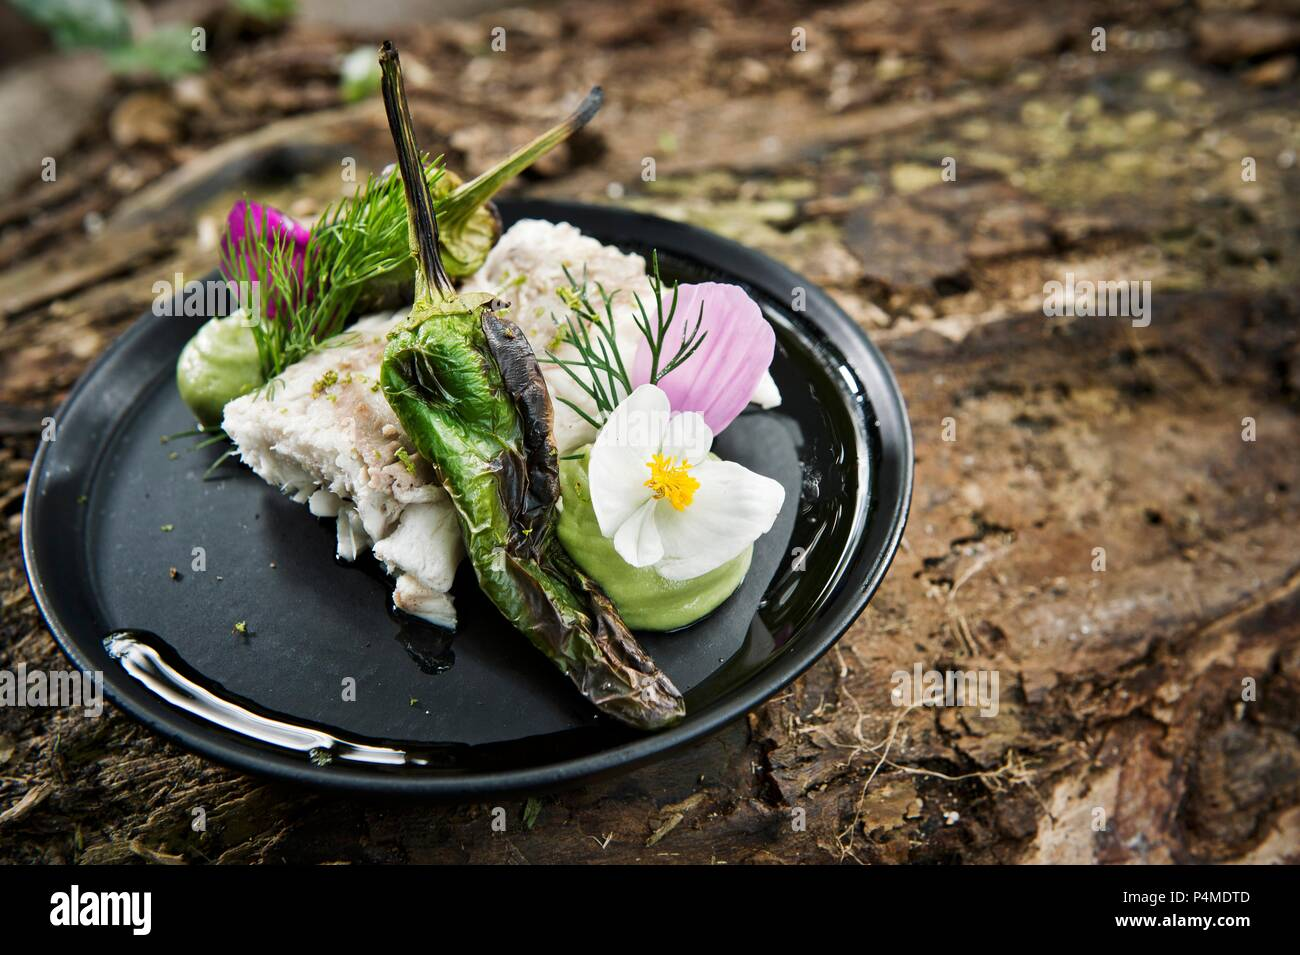 A fish fillet with grilled chillies served with flowers on a camping plate - Stock Image